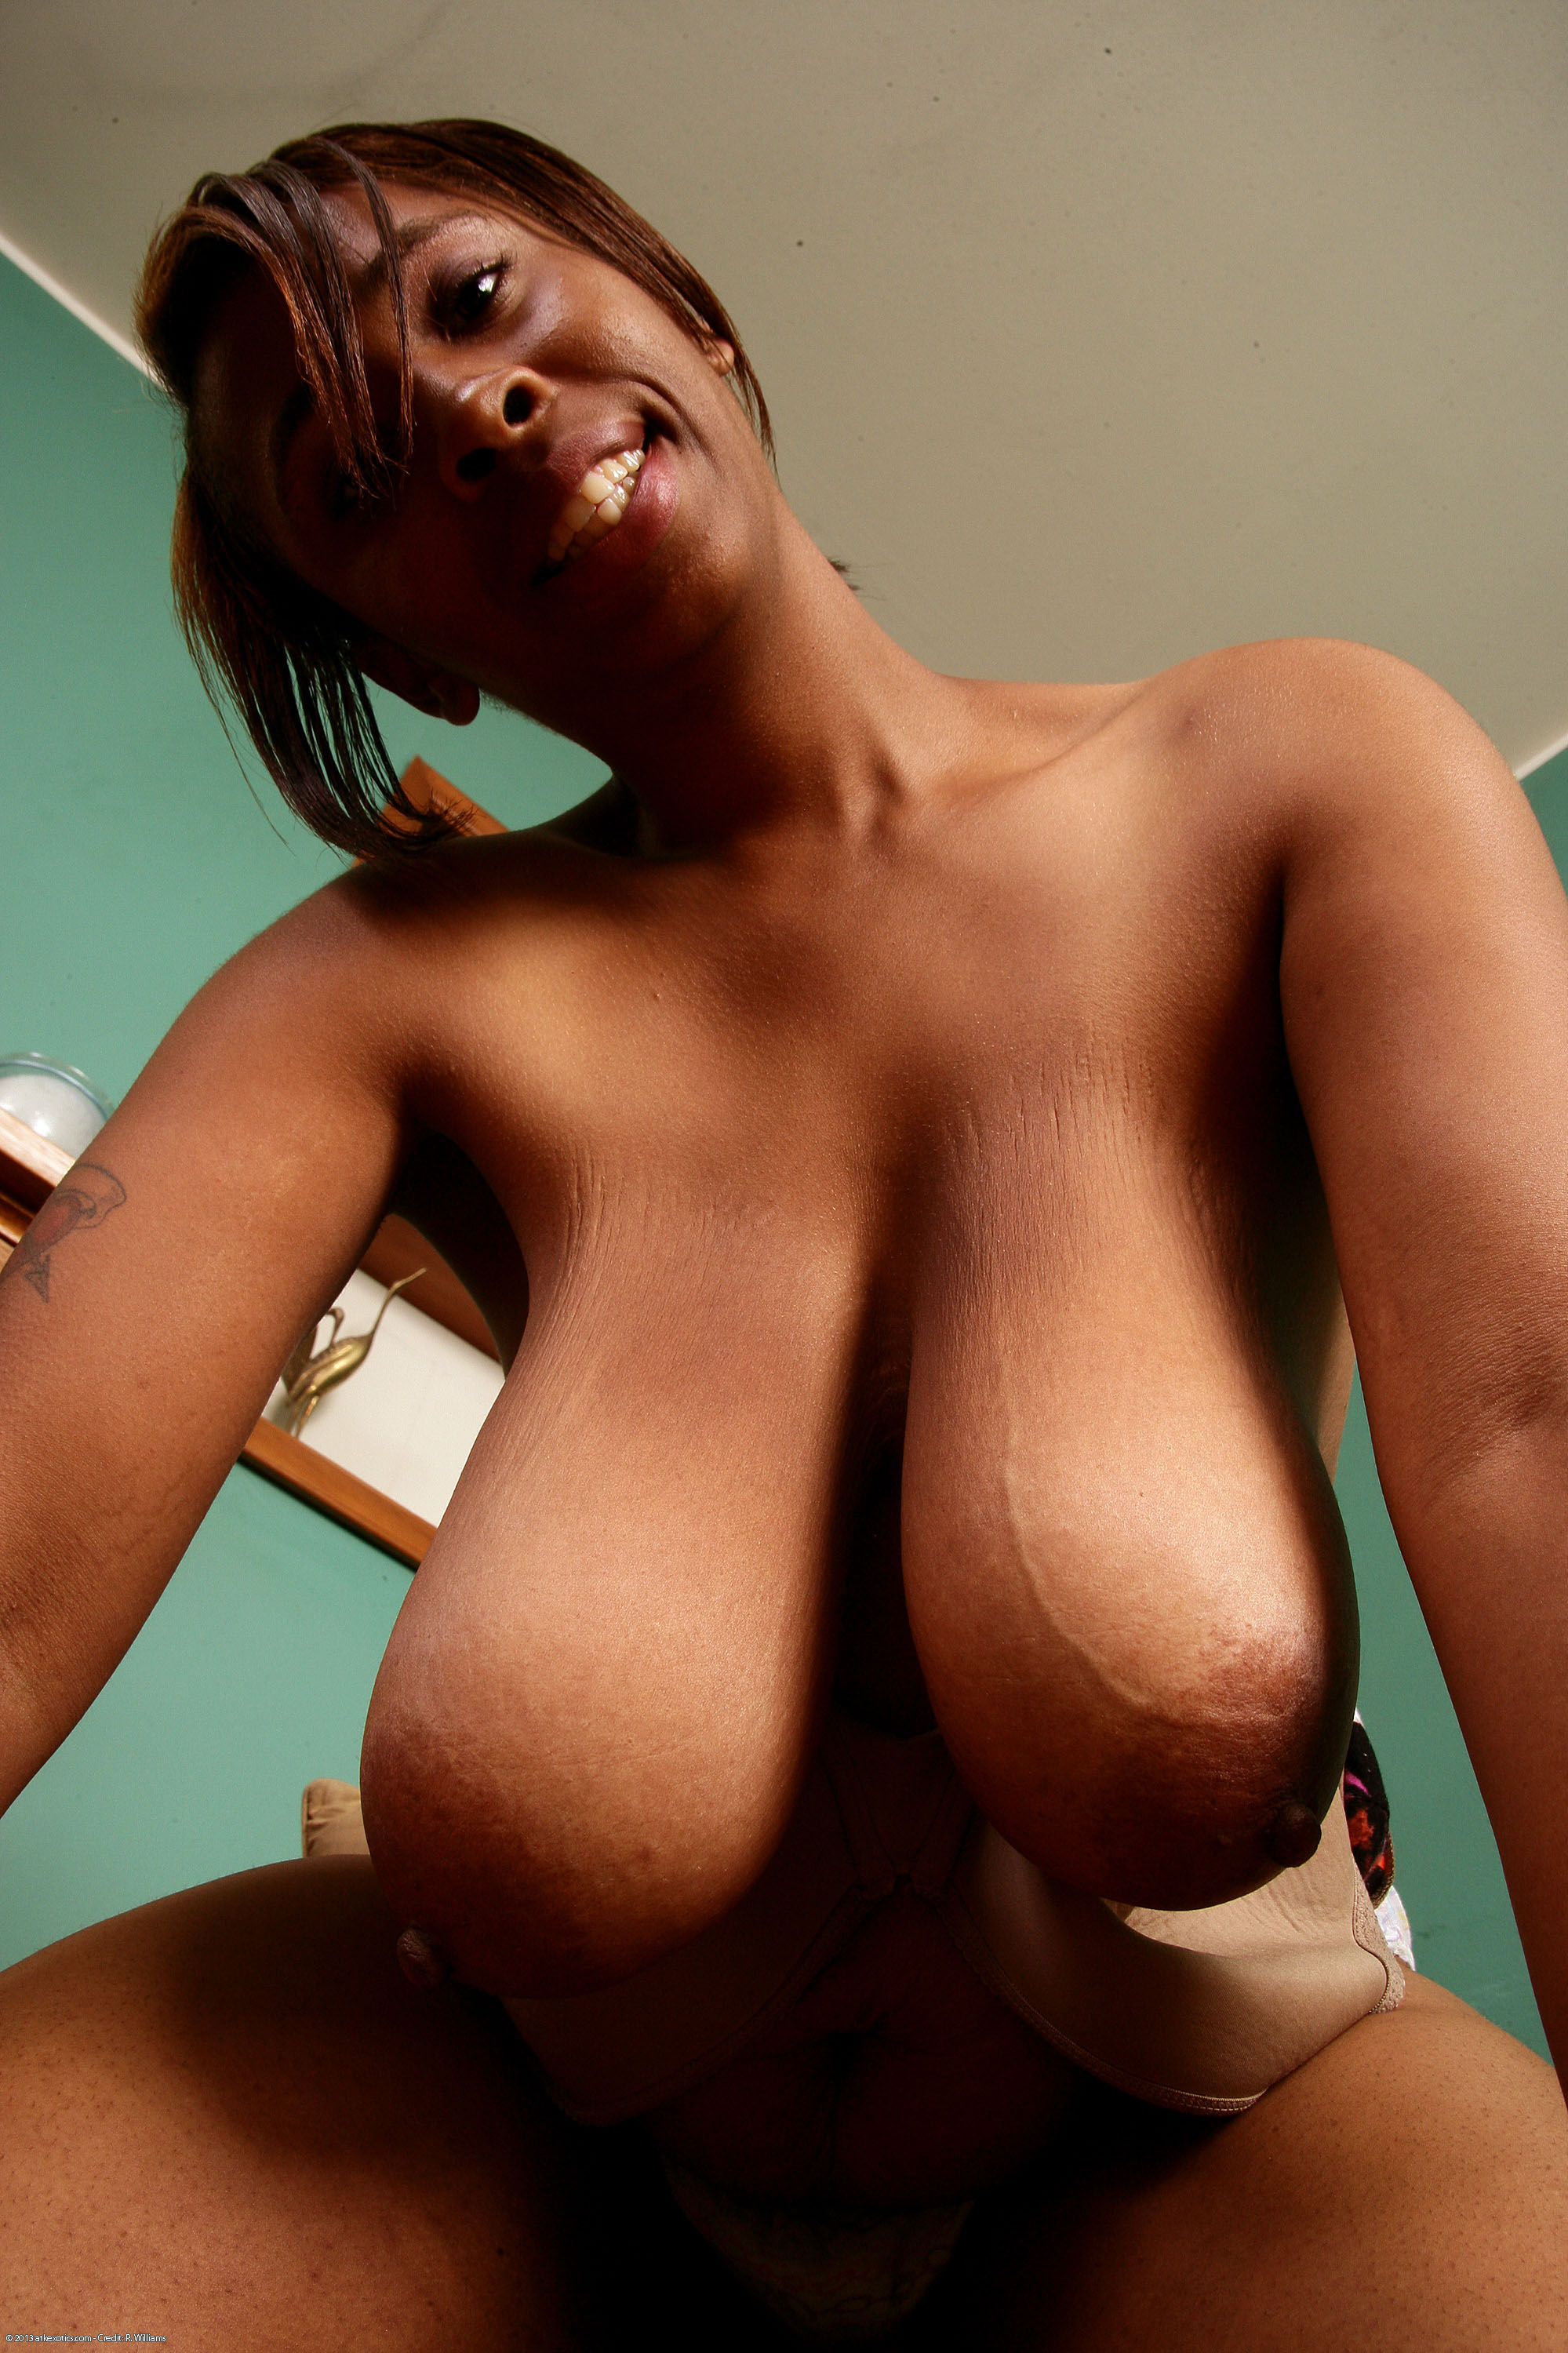 With nude atk ebony marchea recommend